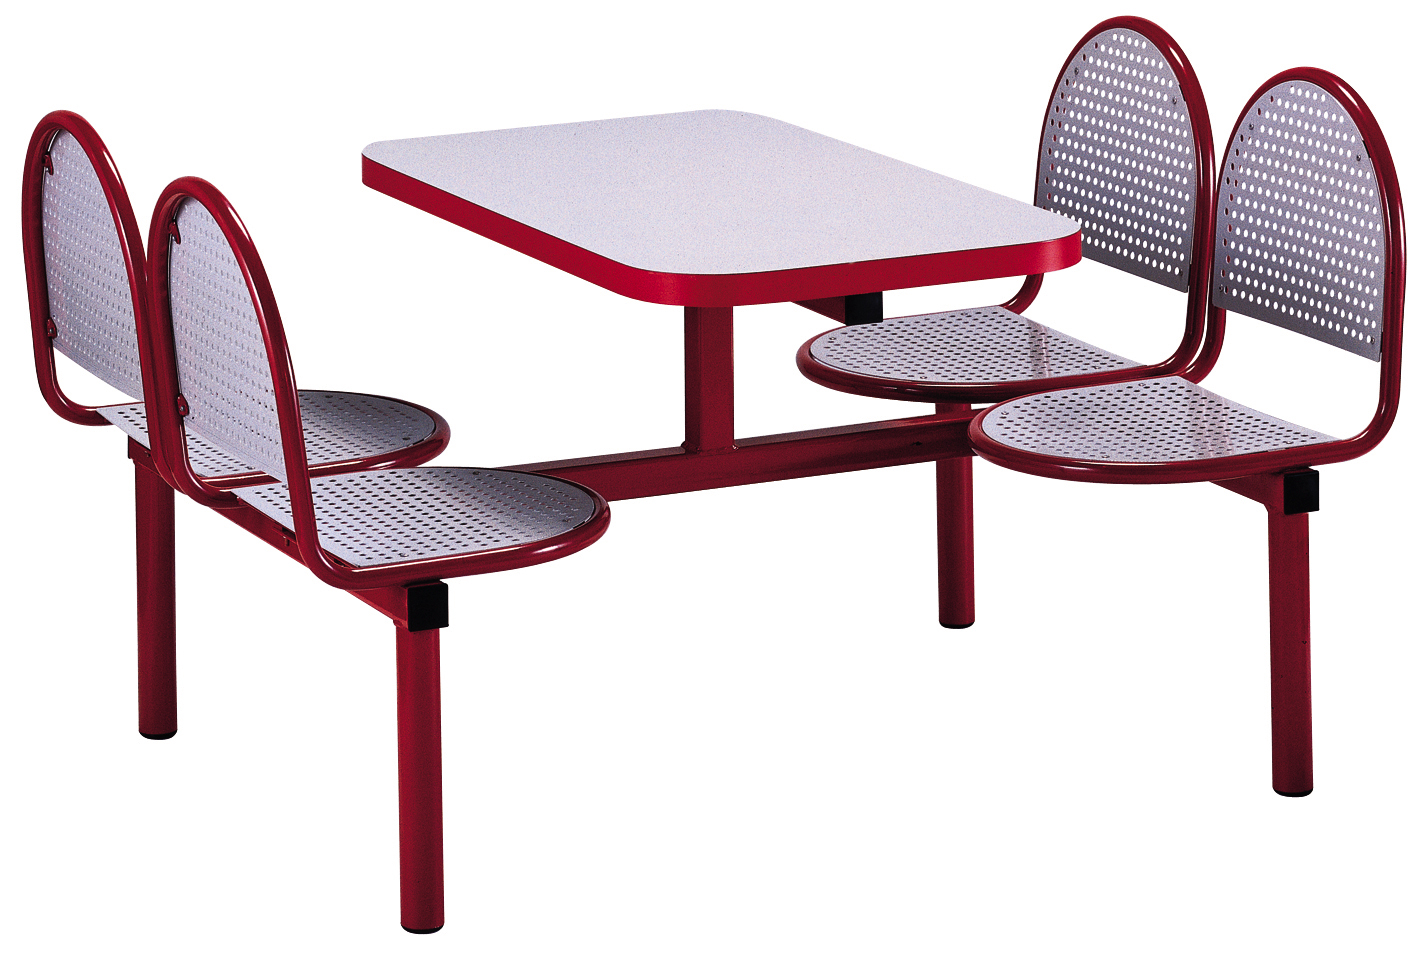 Boston canteen seating unit simply tables chairs for Table and chairs